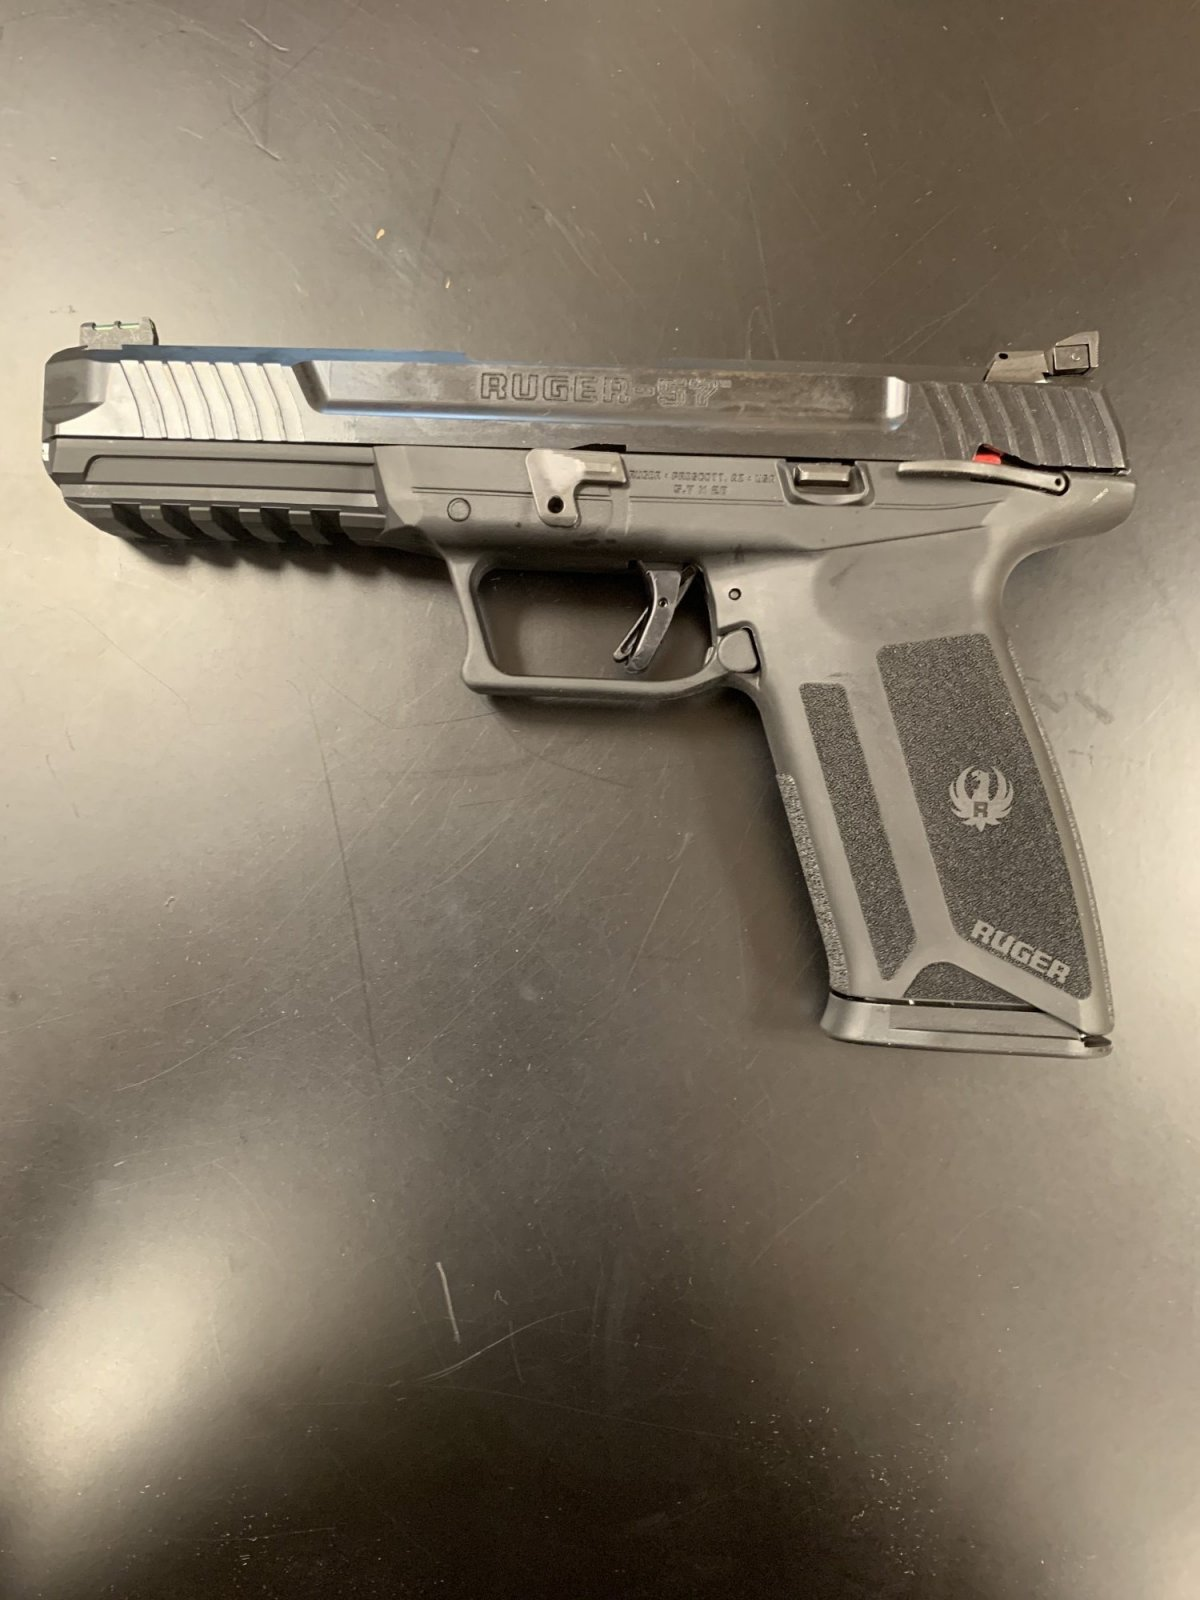 Ruger-57 Semi Automatic Pistol